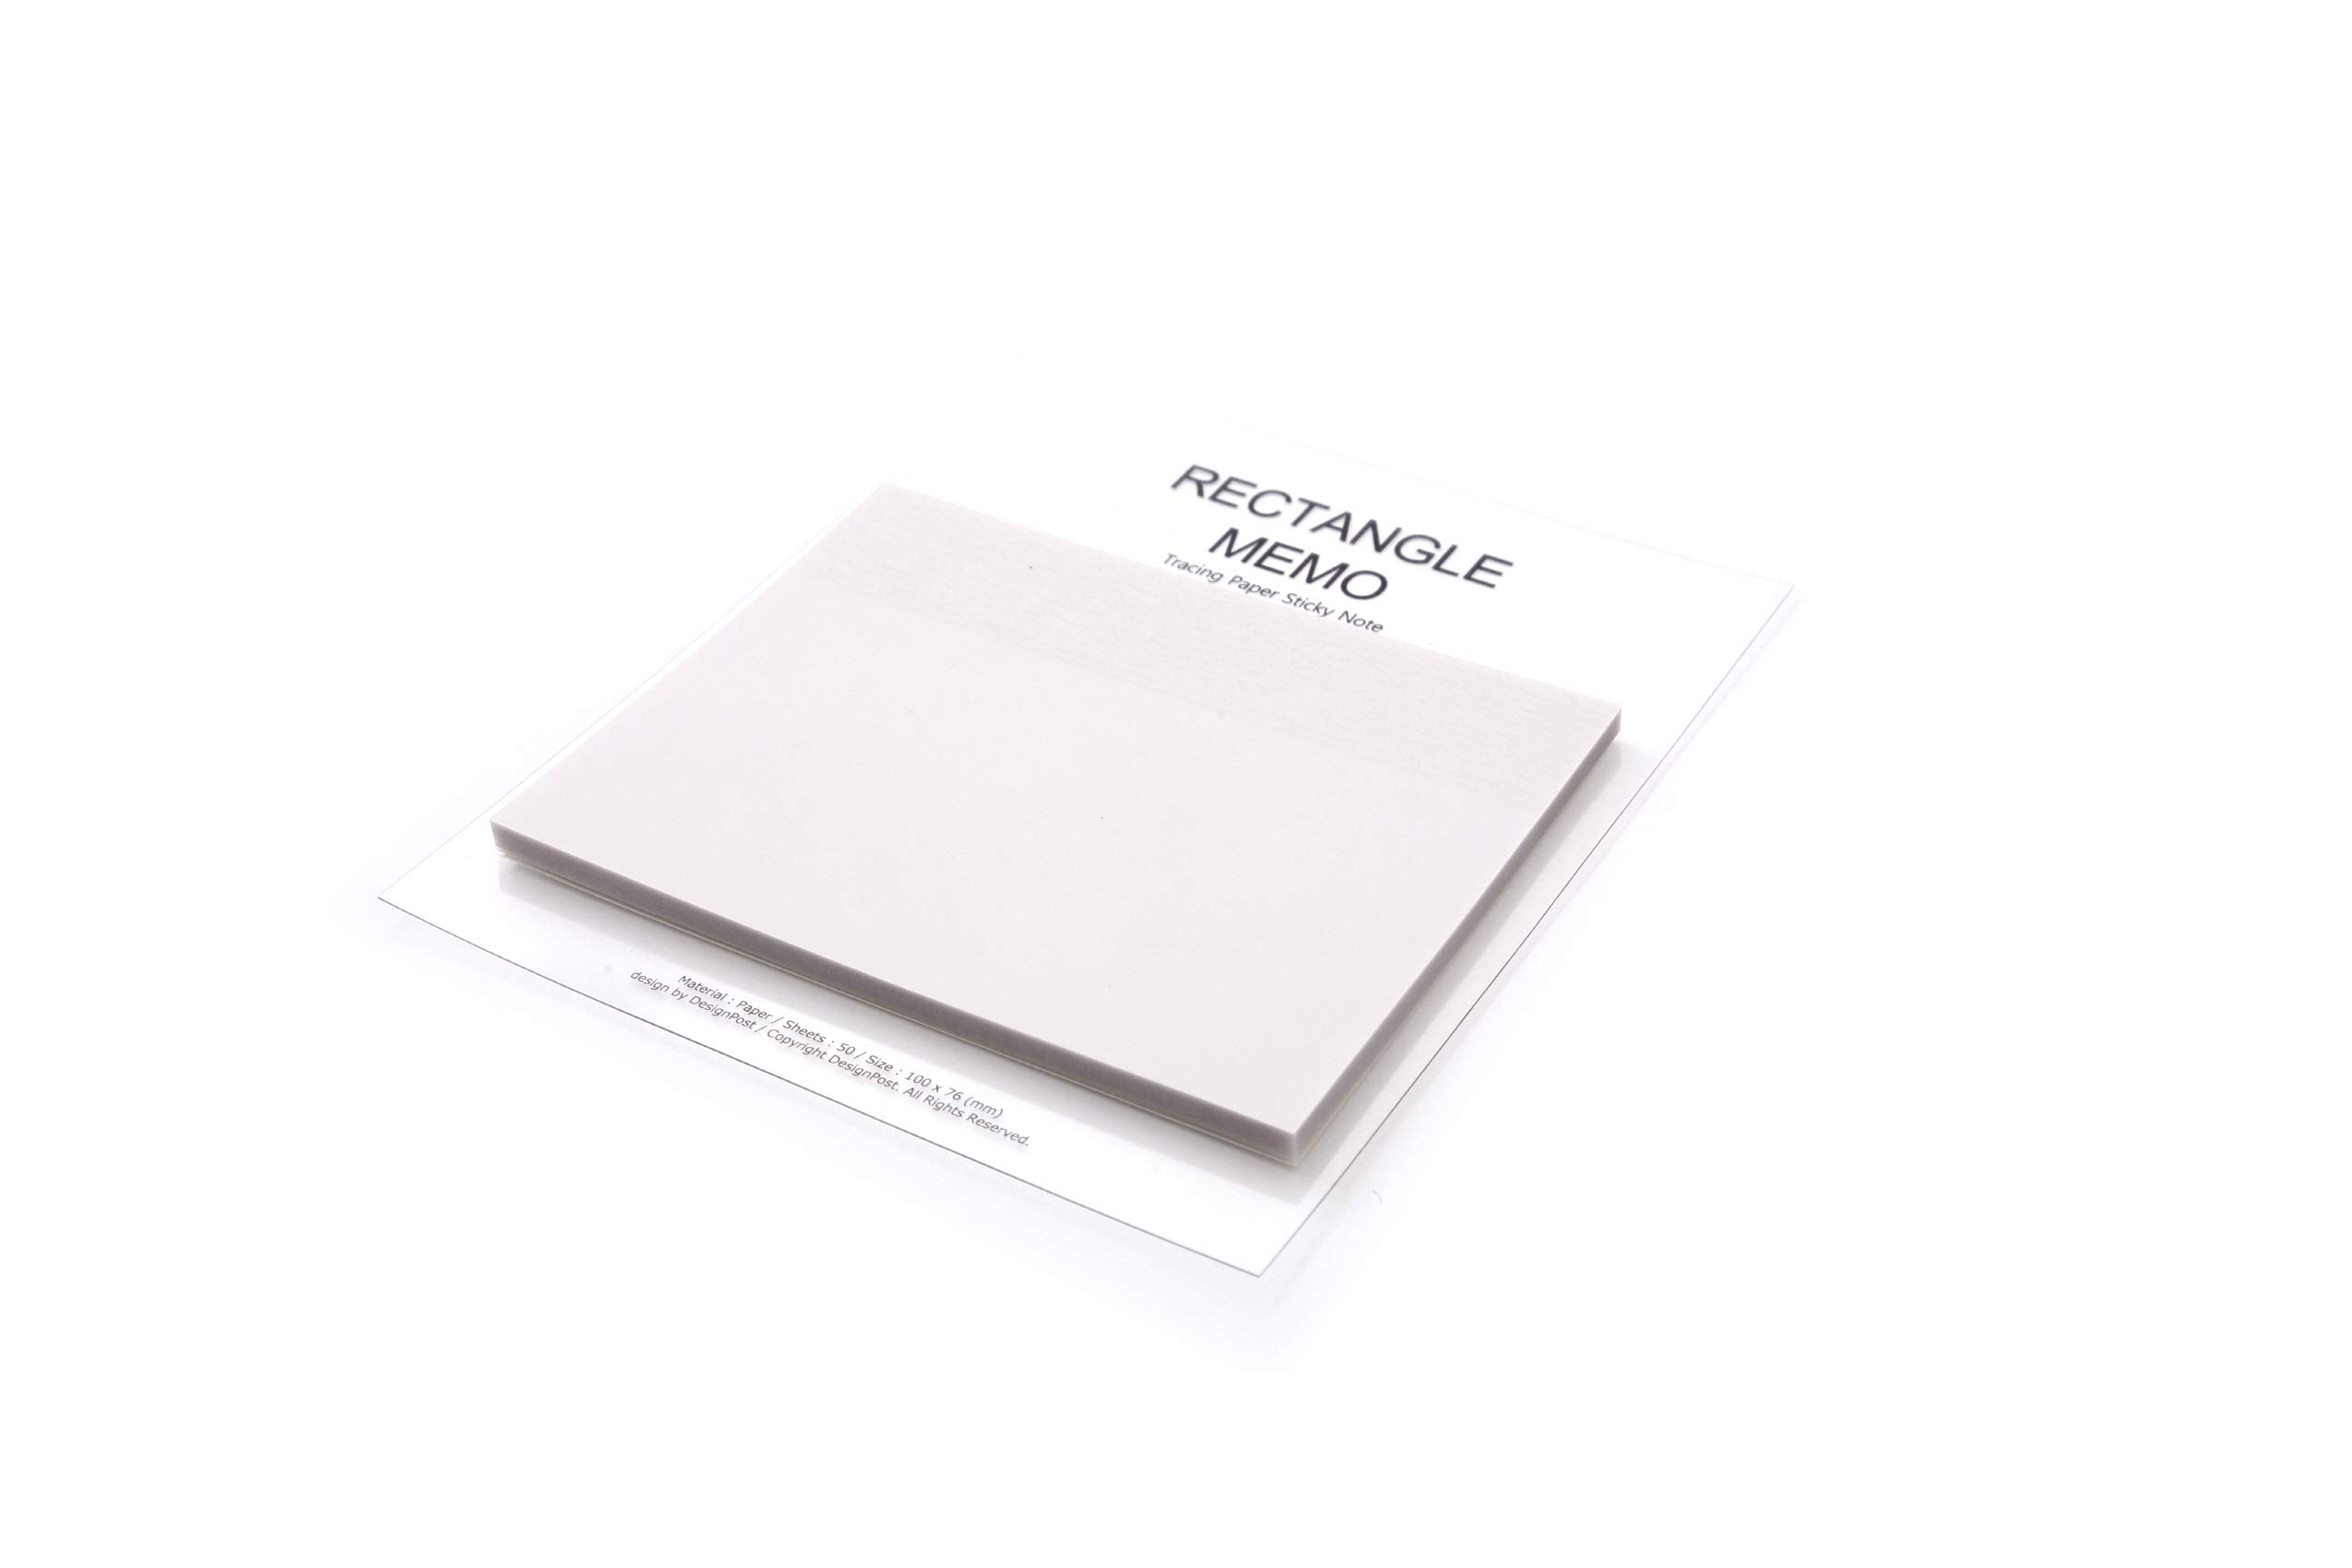 (Pack of 2) Creative Tracing Paper Sticky Memo 4 X 3 inches, 50 Sheets Cute Note Pads Rectangle Styles Unique Self Adhesive Removable Transparent Memo Various Size Bookmark Page Flag